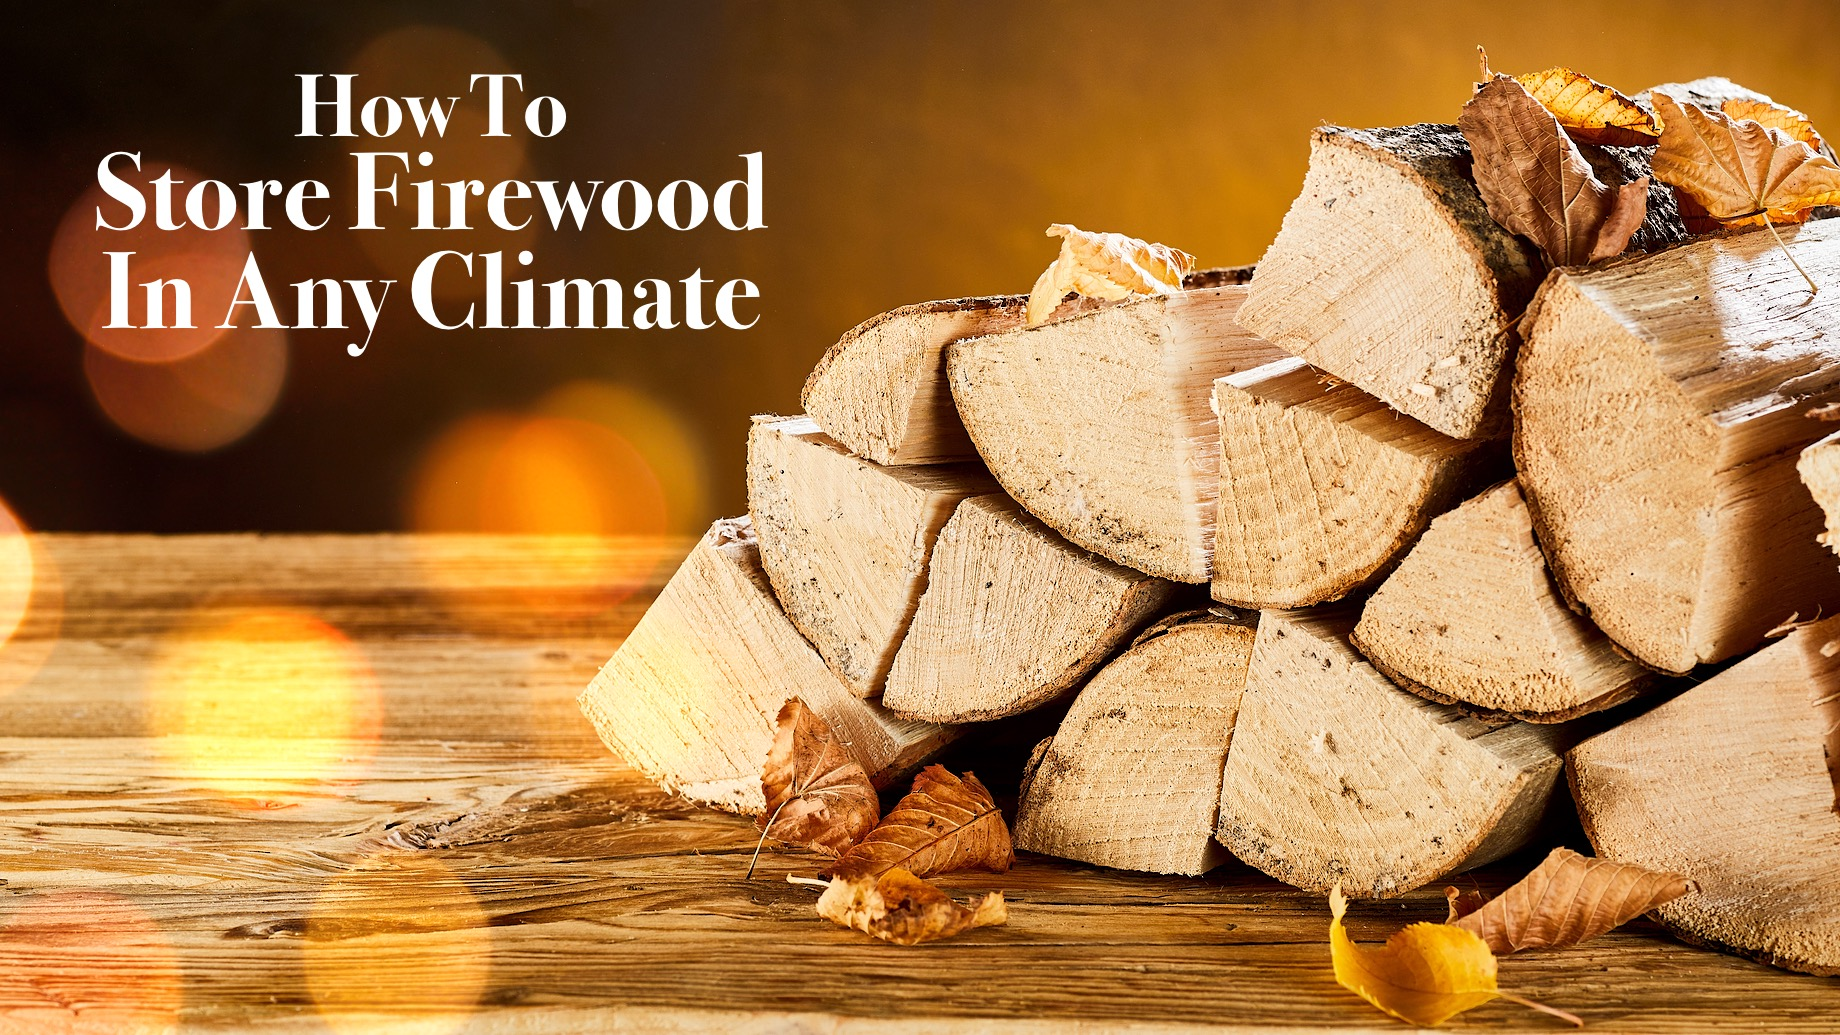 How To Store Firewood In Any Climate